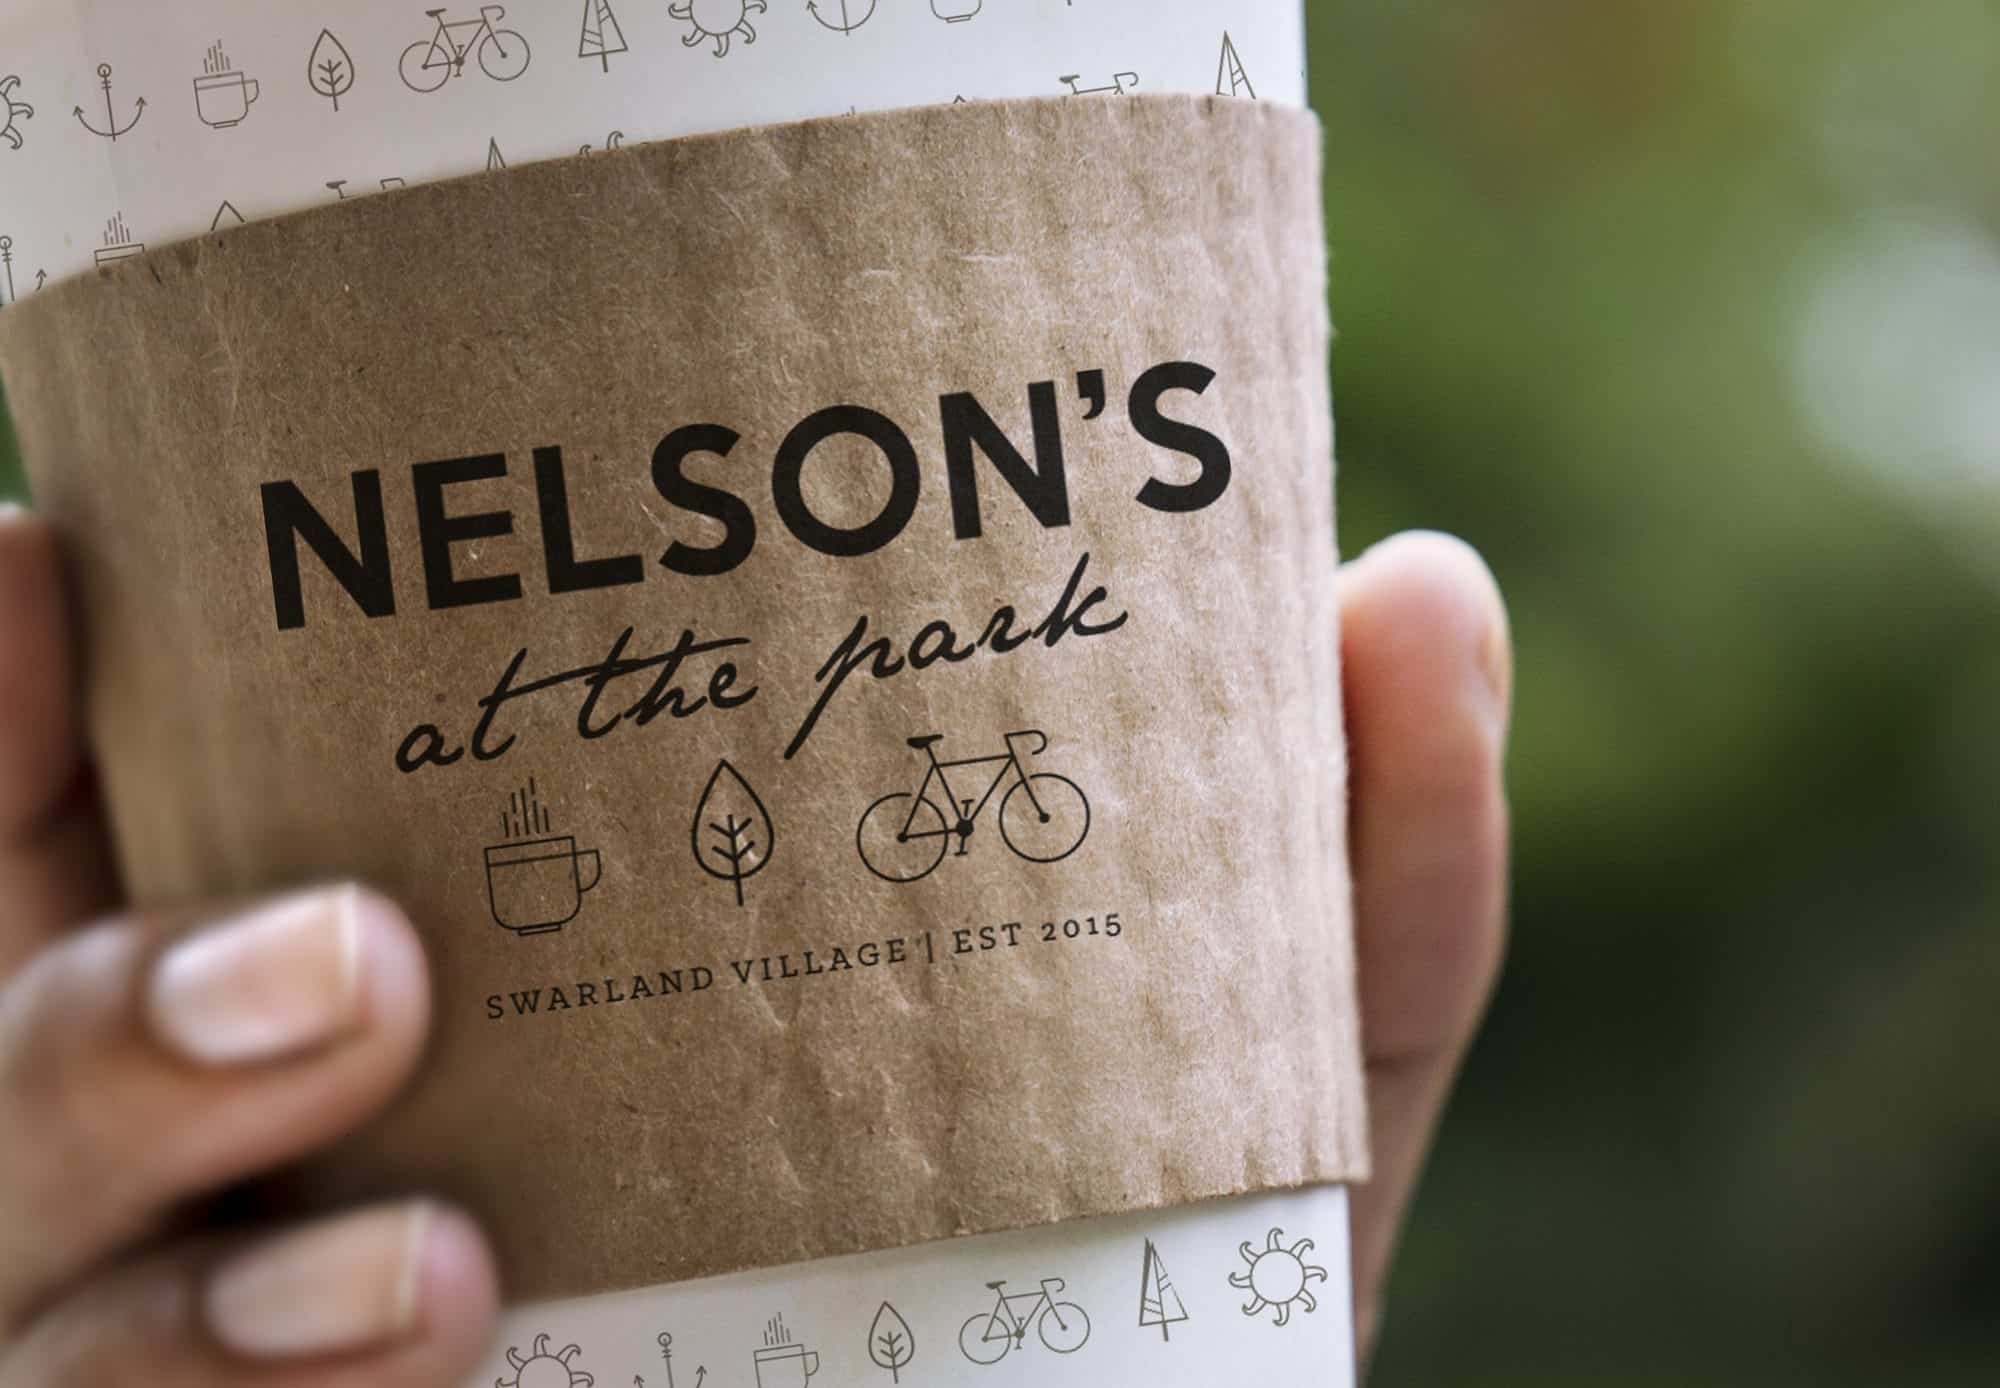 Nelsons8